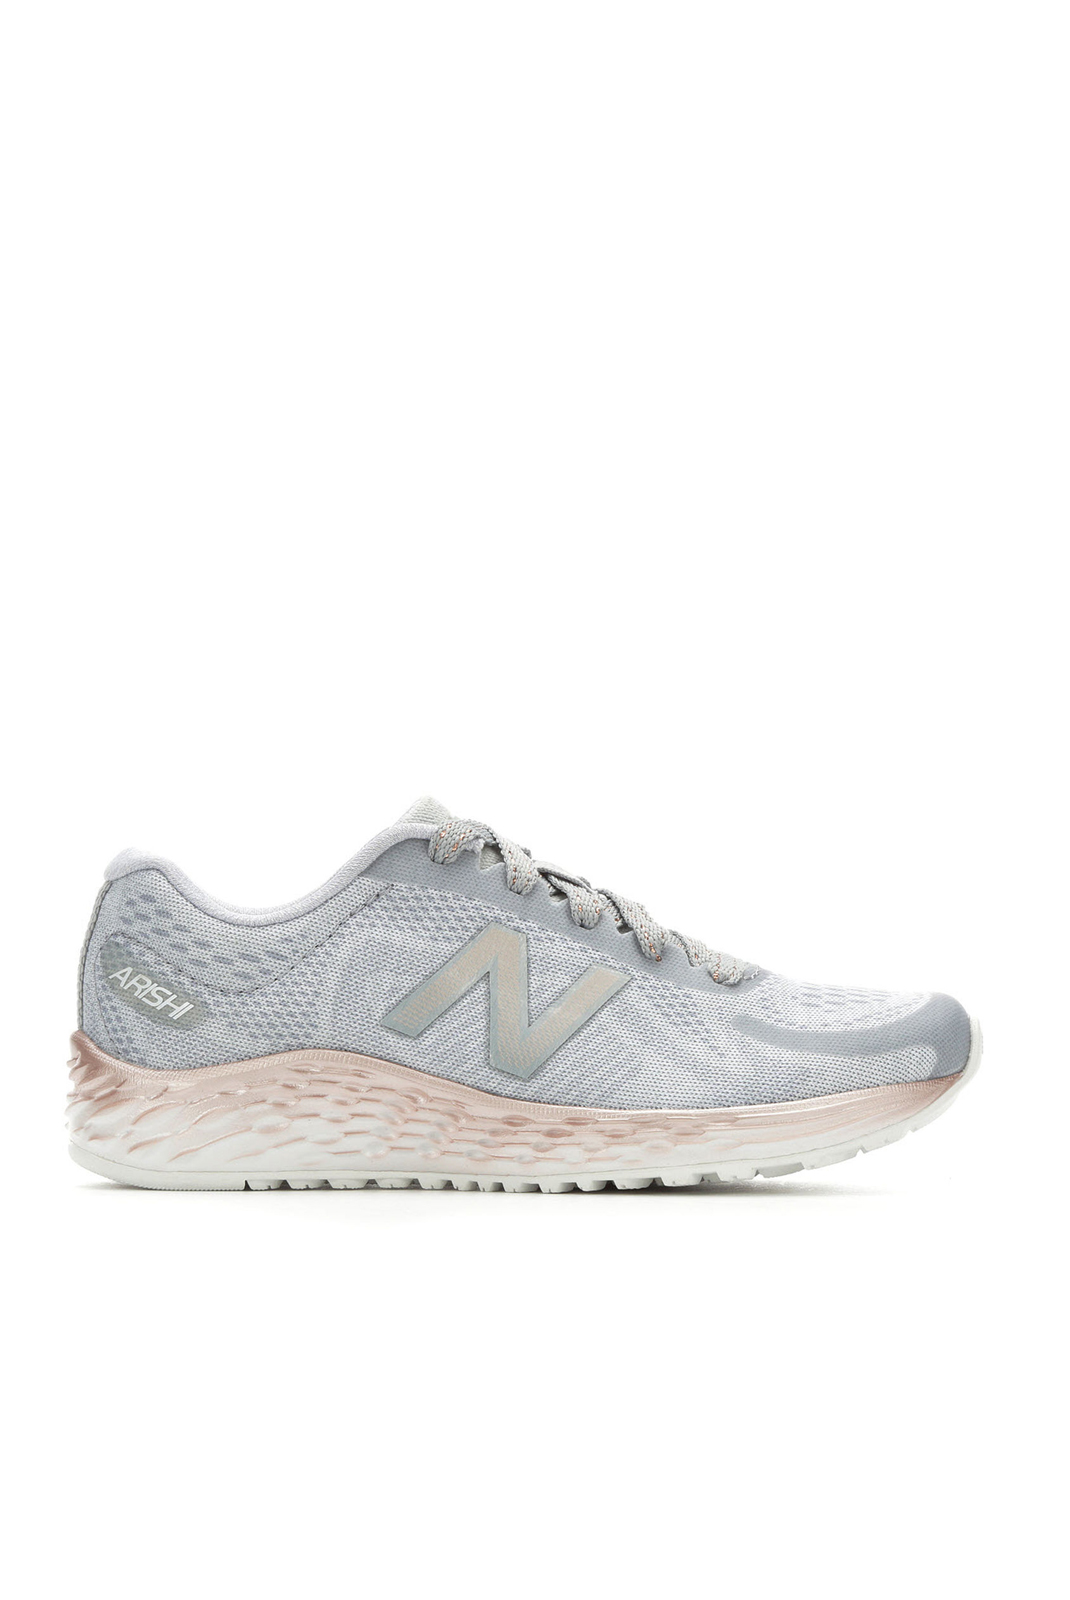 Baskets / Sneakers  New balance KJARIGMY gris